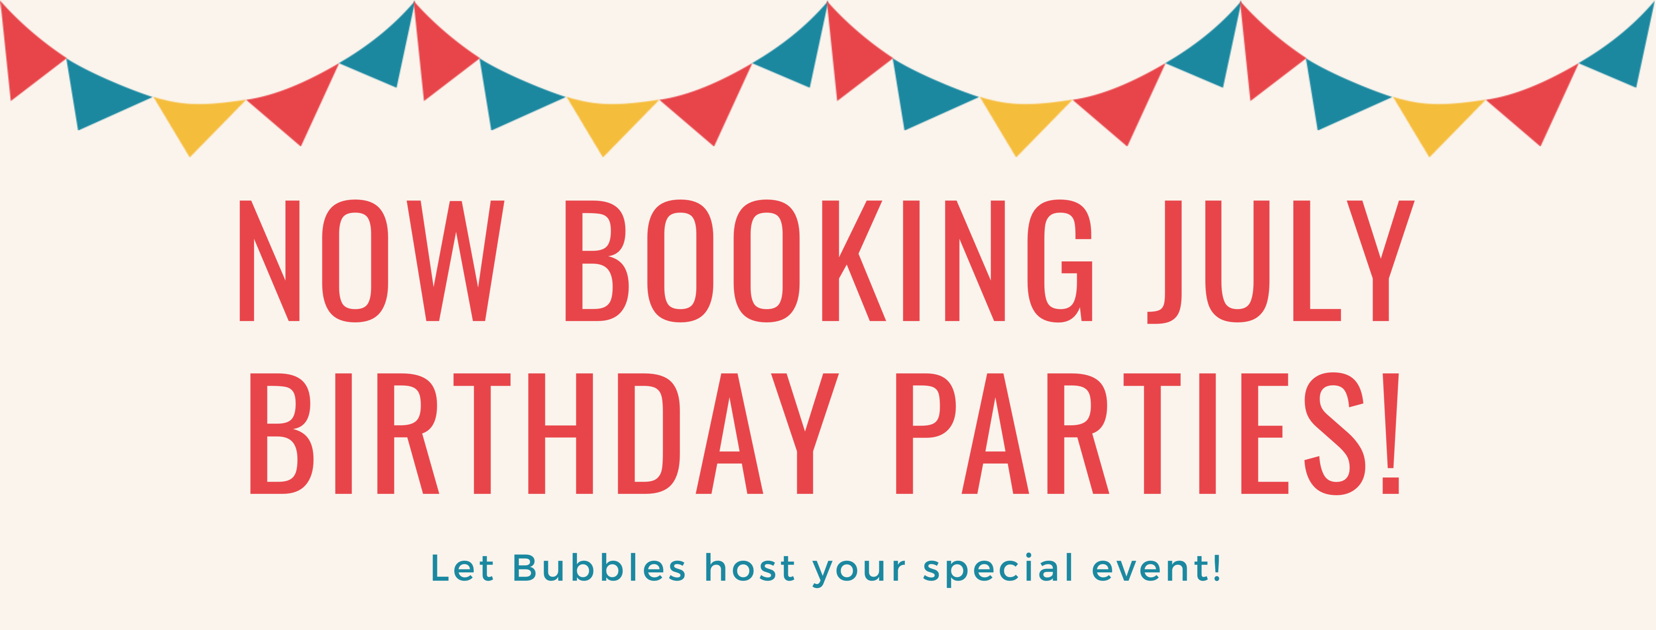 July Birthday Parties at Bubbles Gift Shoppe